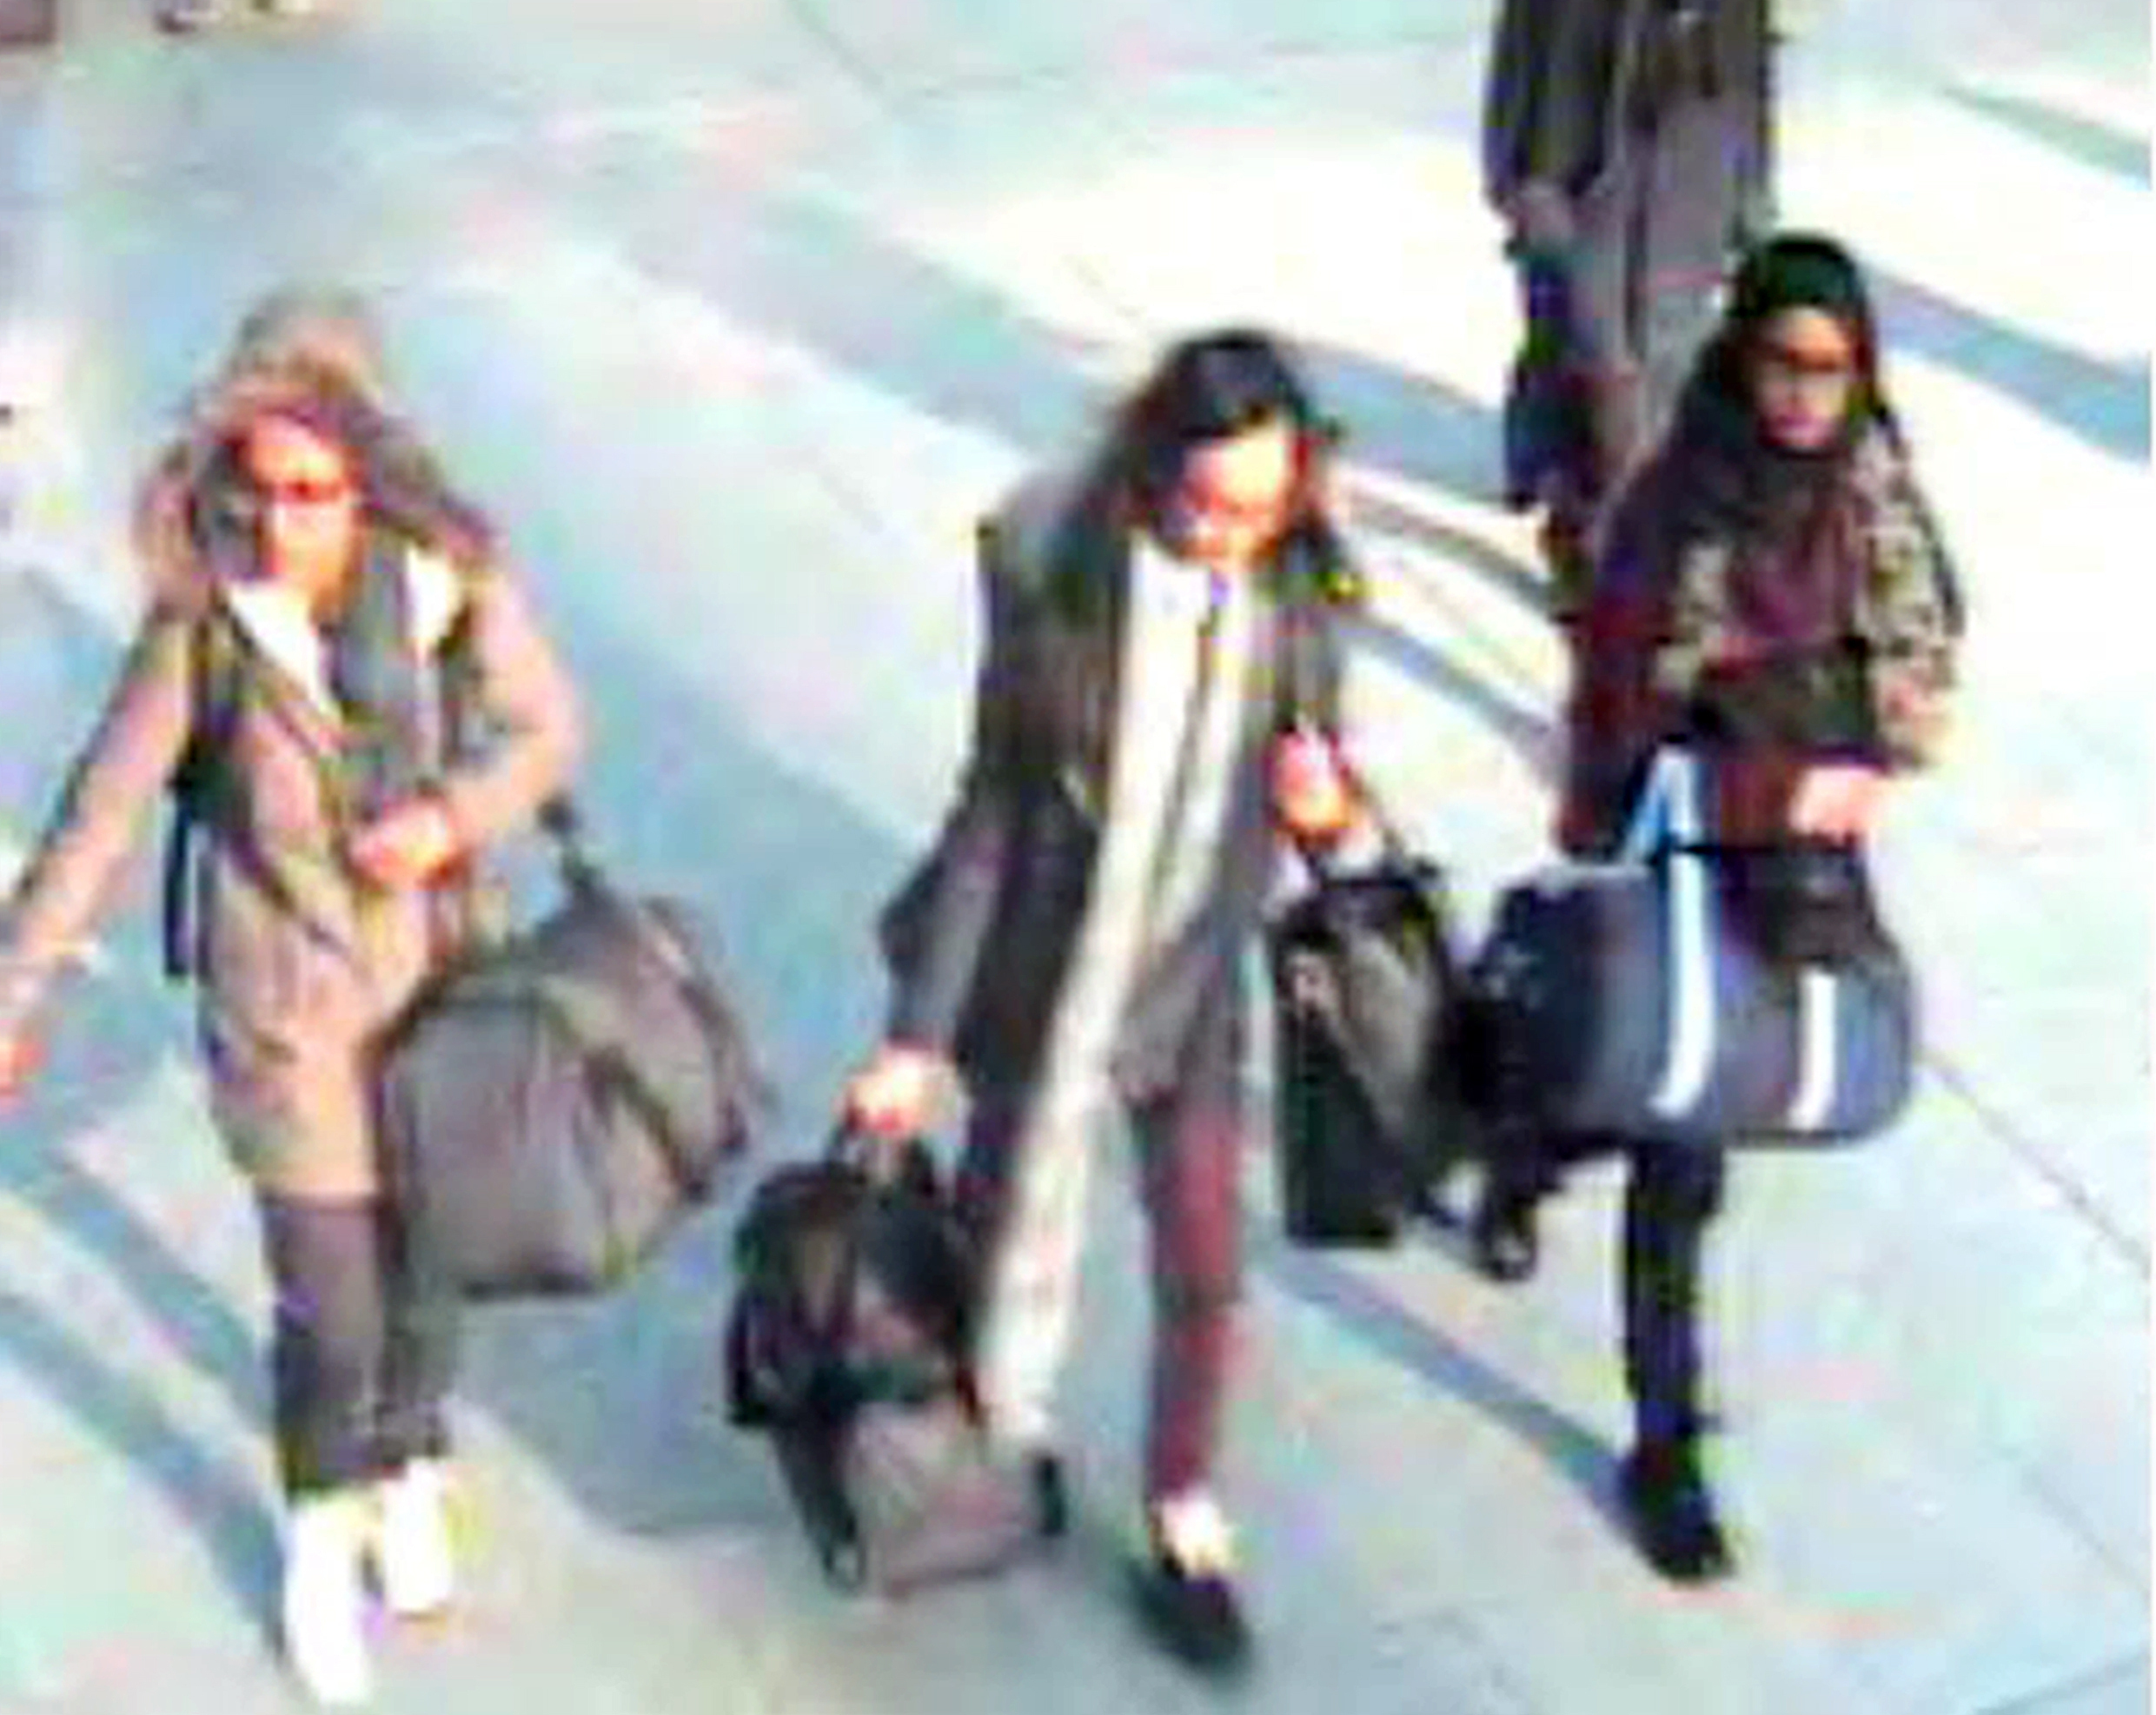 United Kingdom schoolgirl who ran away to join ISIL wants to 'come home'